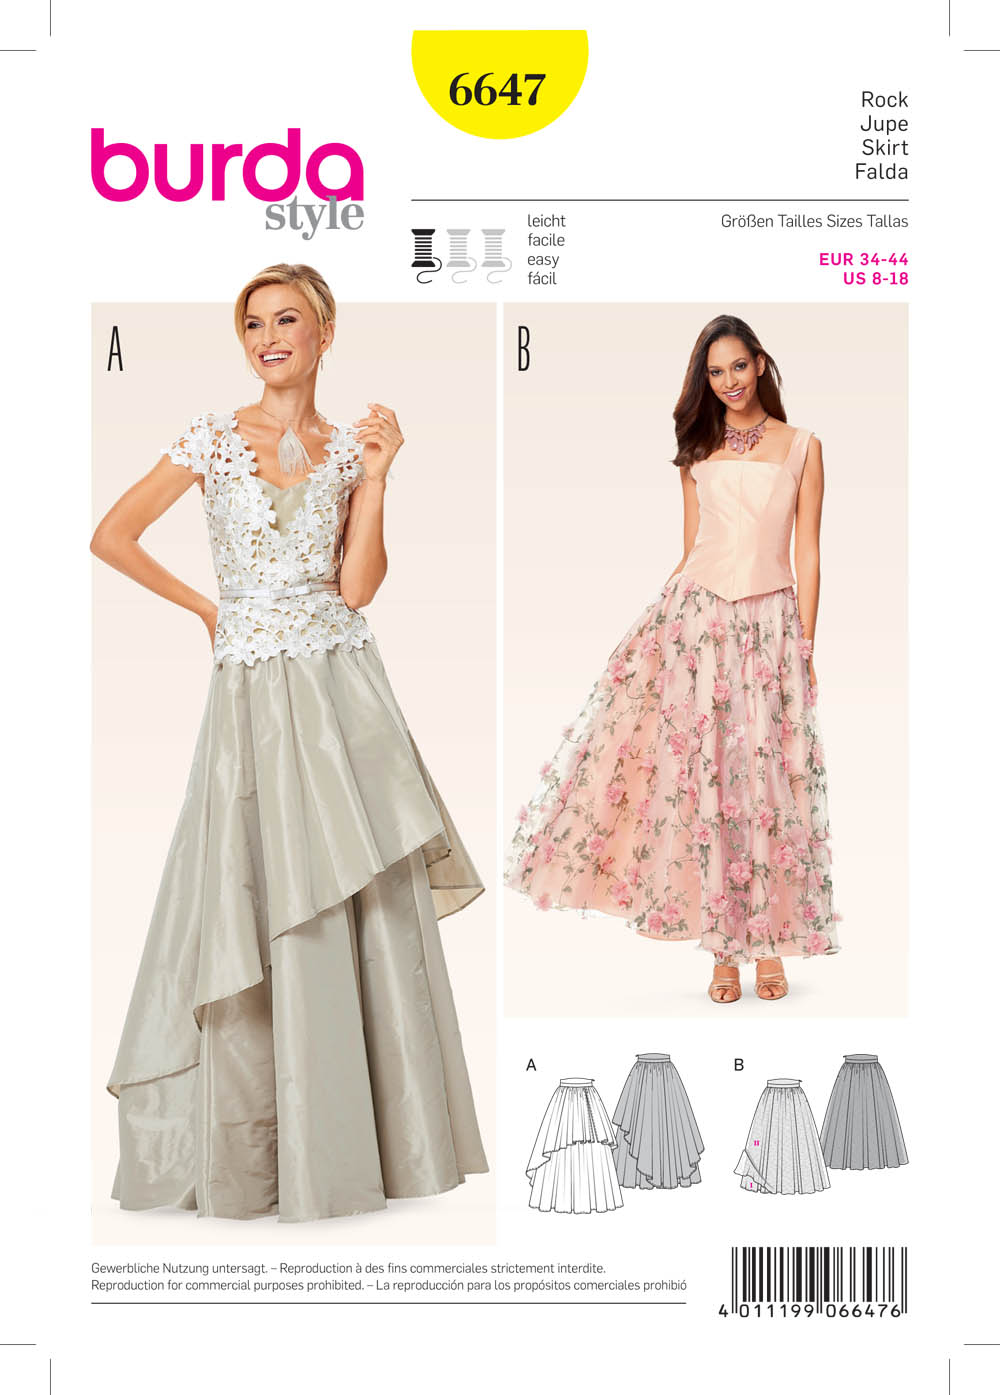 Burda 6647 Misses' Skirt